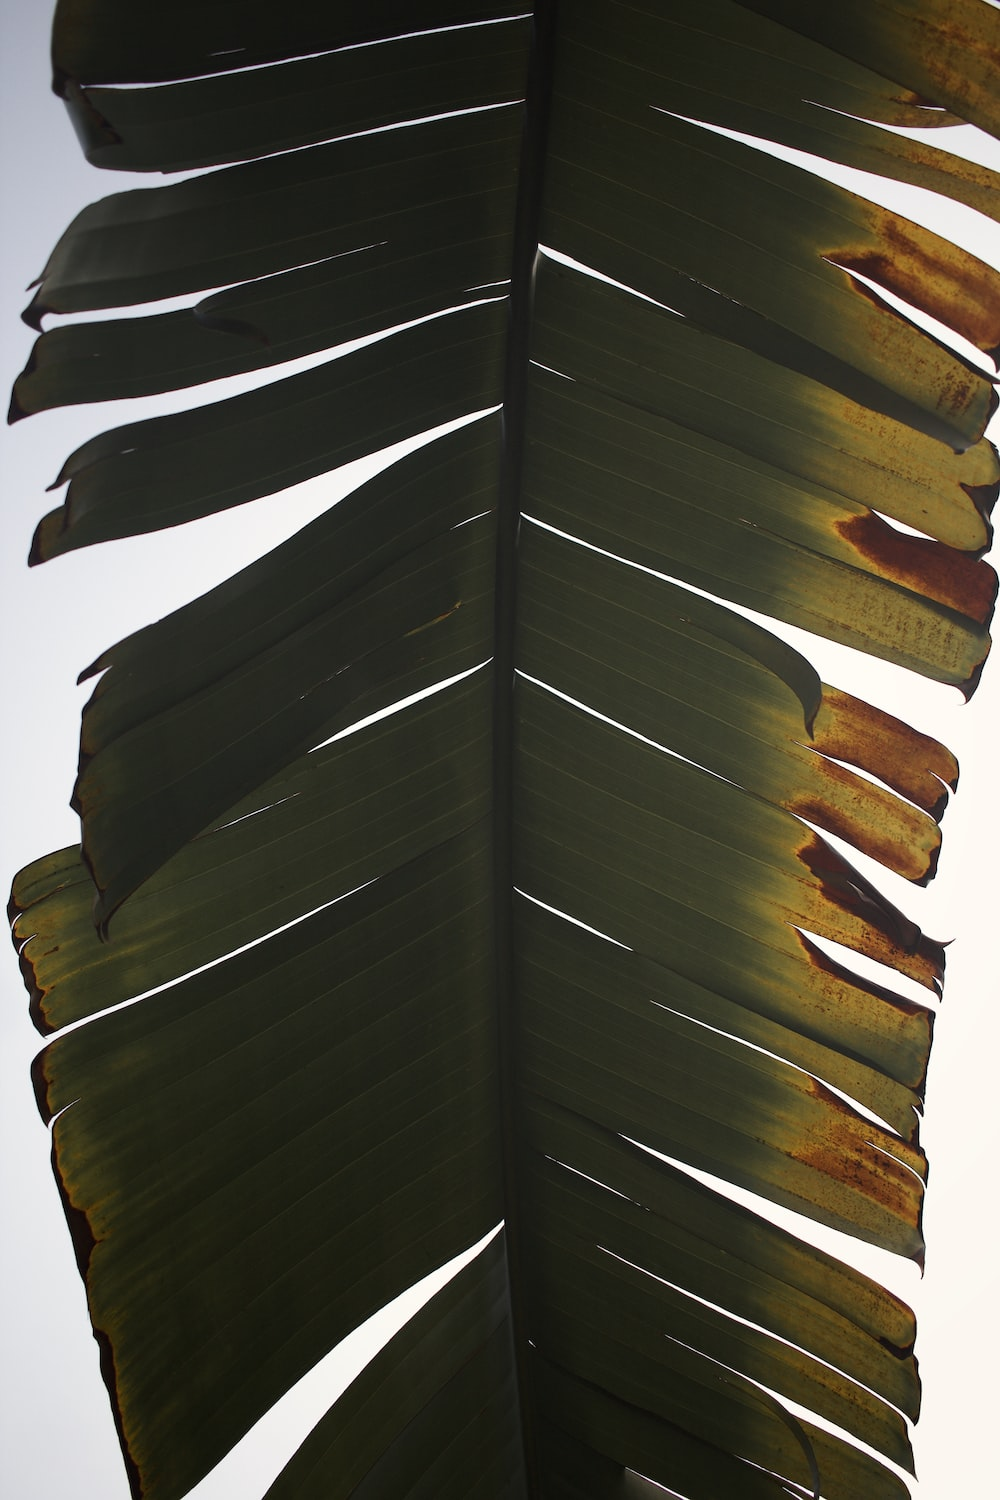 brown and black feather on white background